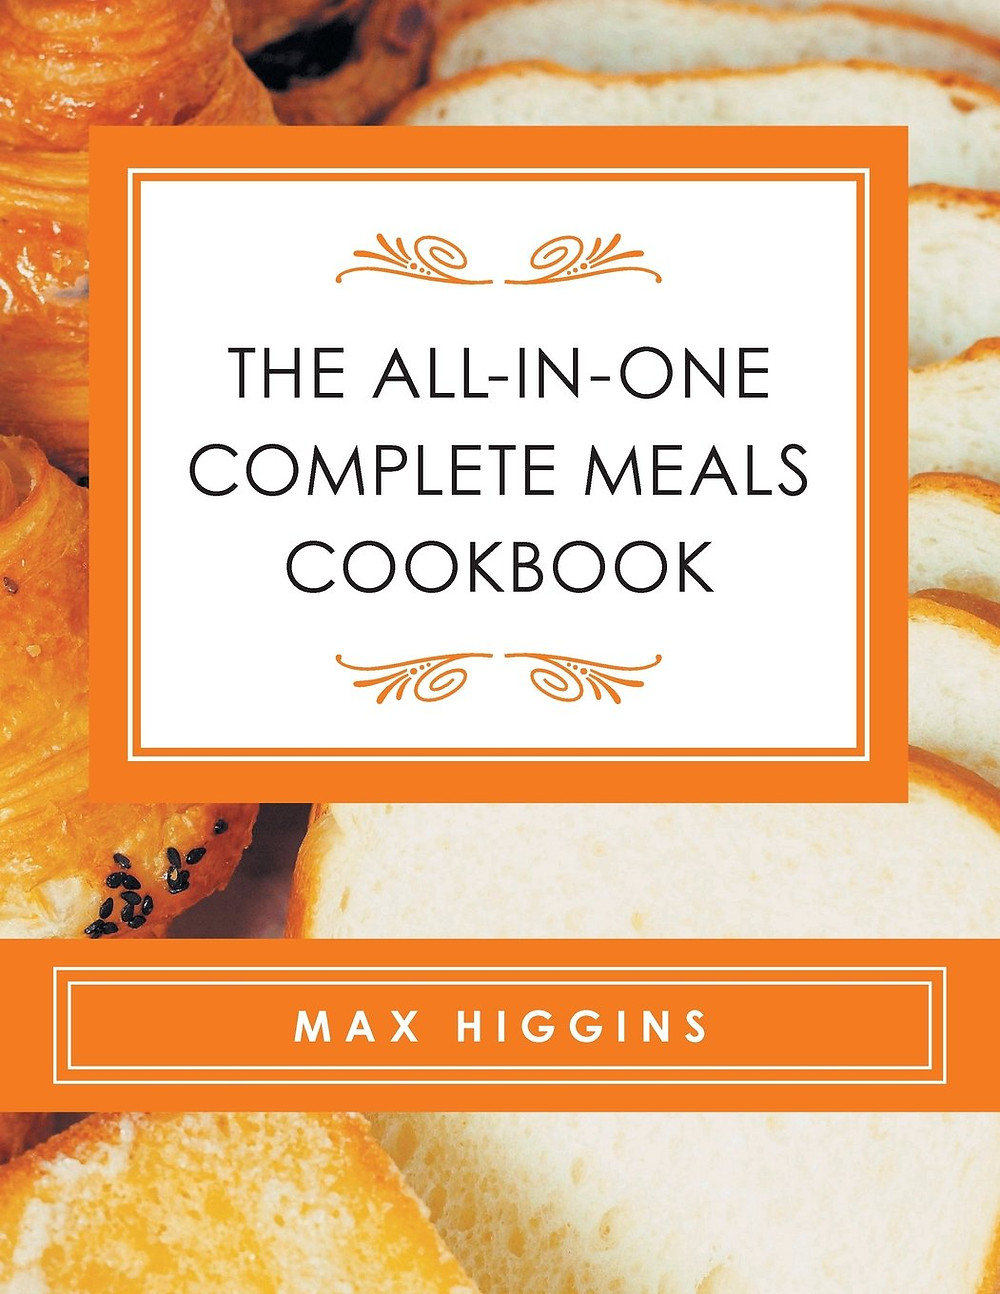 The All-in-One Complete Meals Cookbook by Max Higgins_The BookWalker